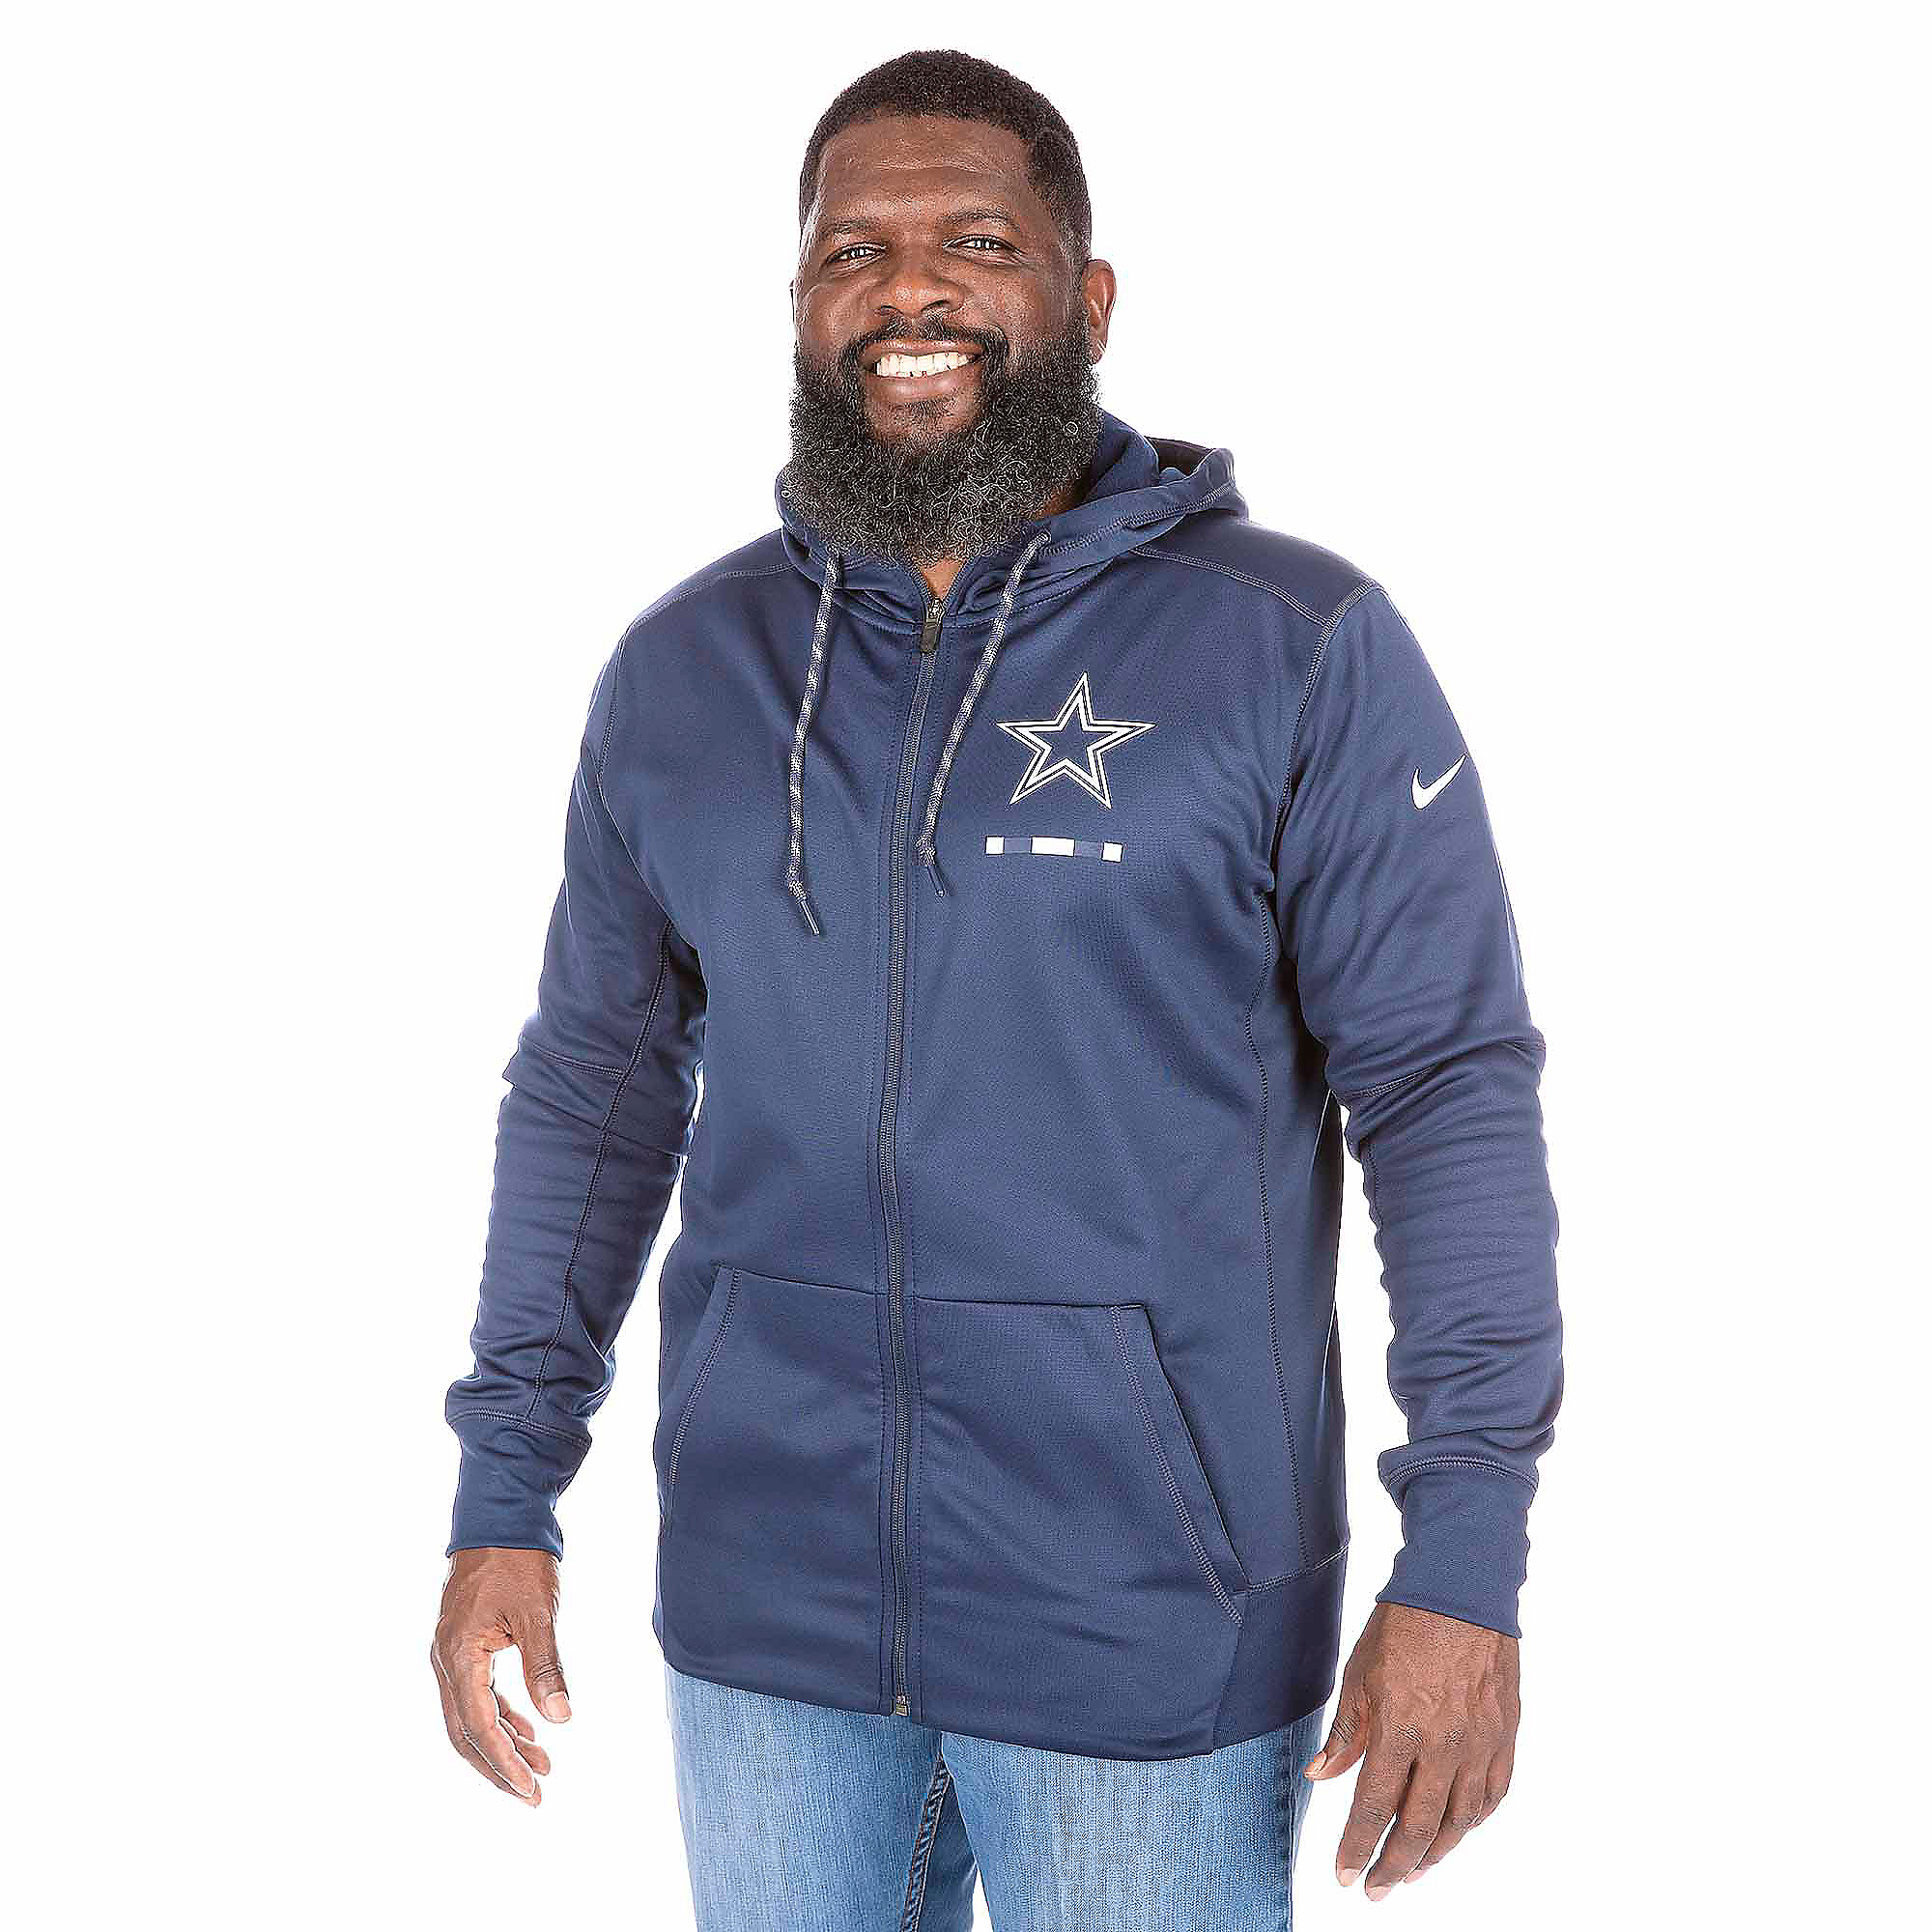 Dallas Cowboys Nike Therma-FIT Full-Zip Jacket